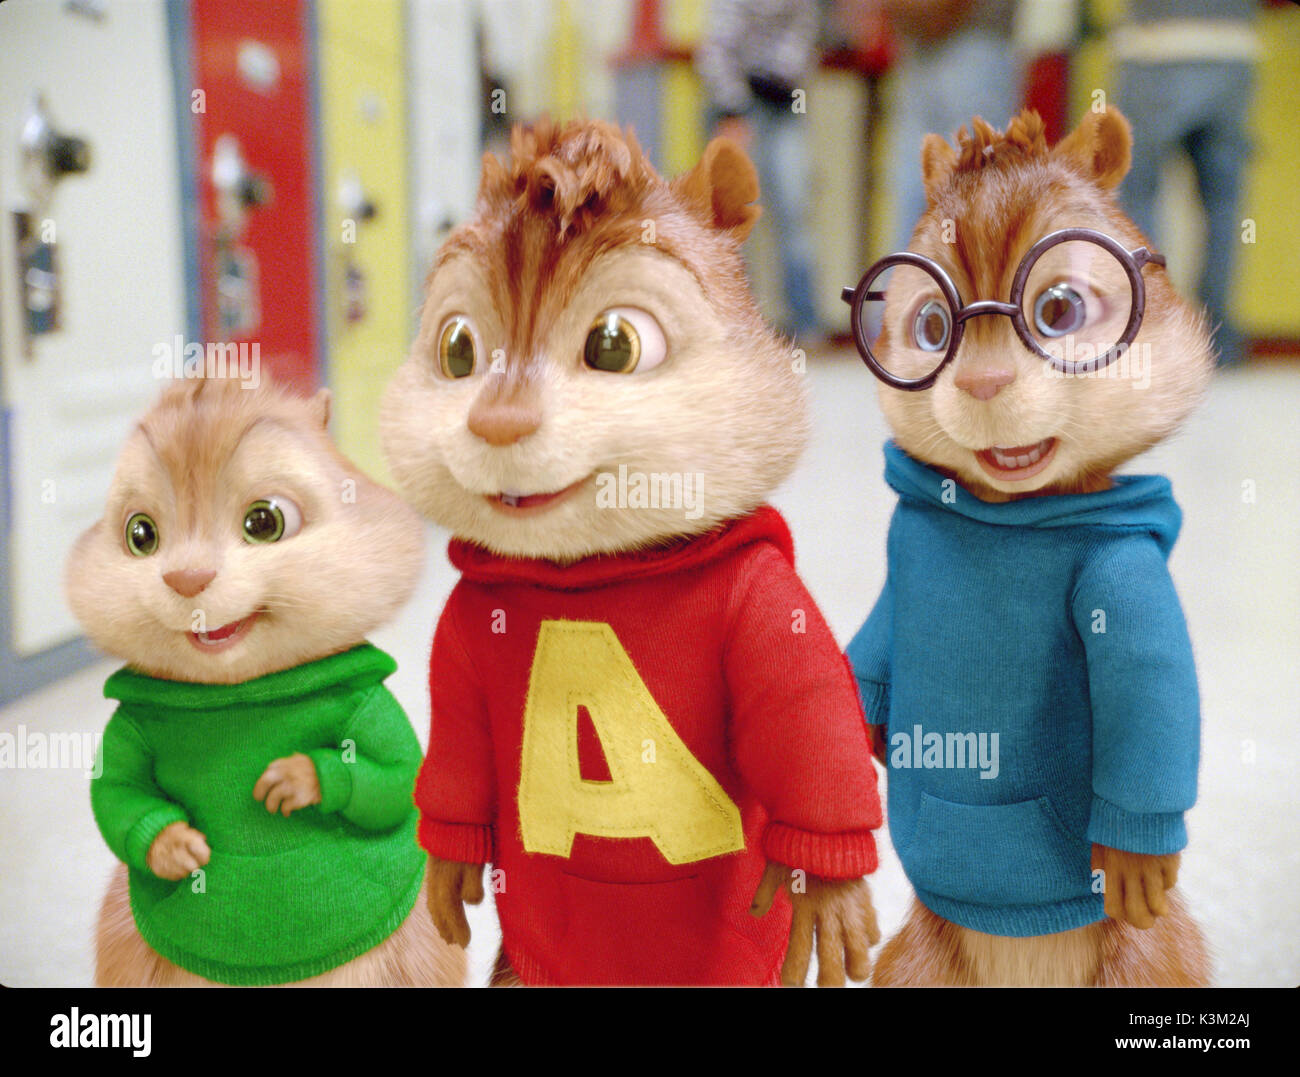 alvin simon theodore alvin chipmunks stock photos & alvin simon